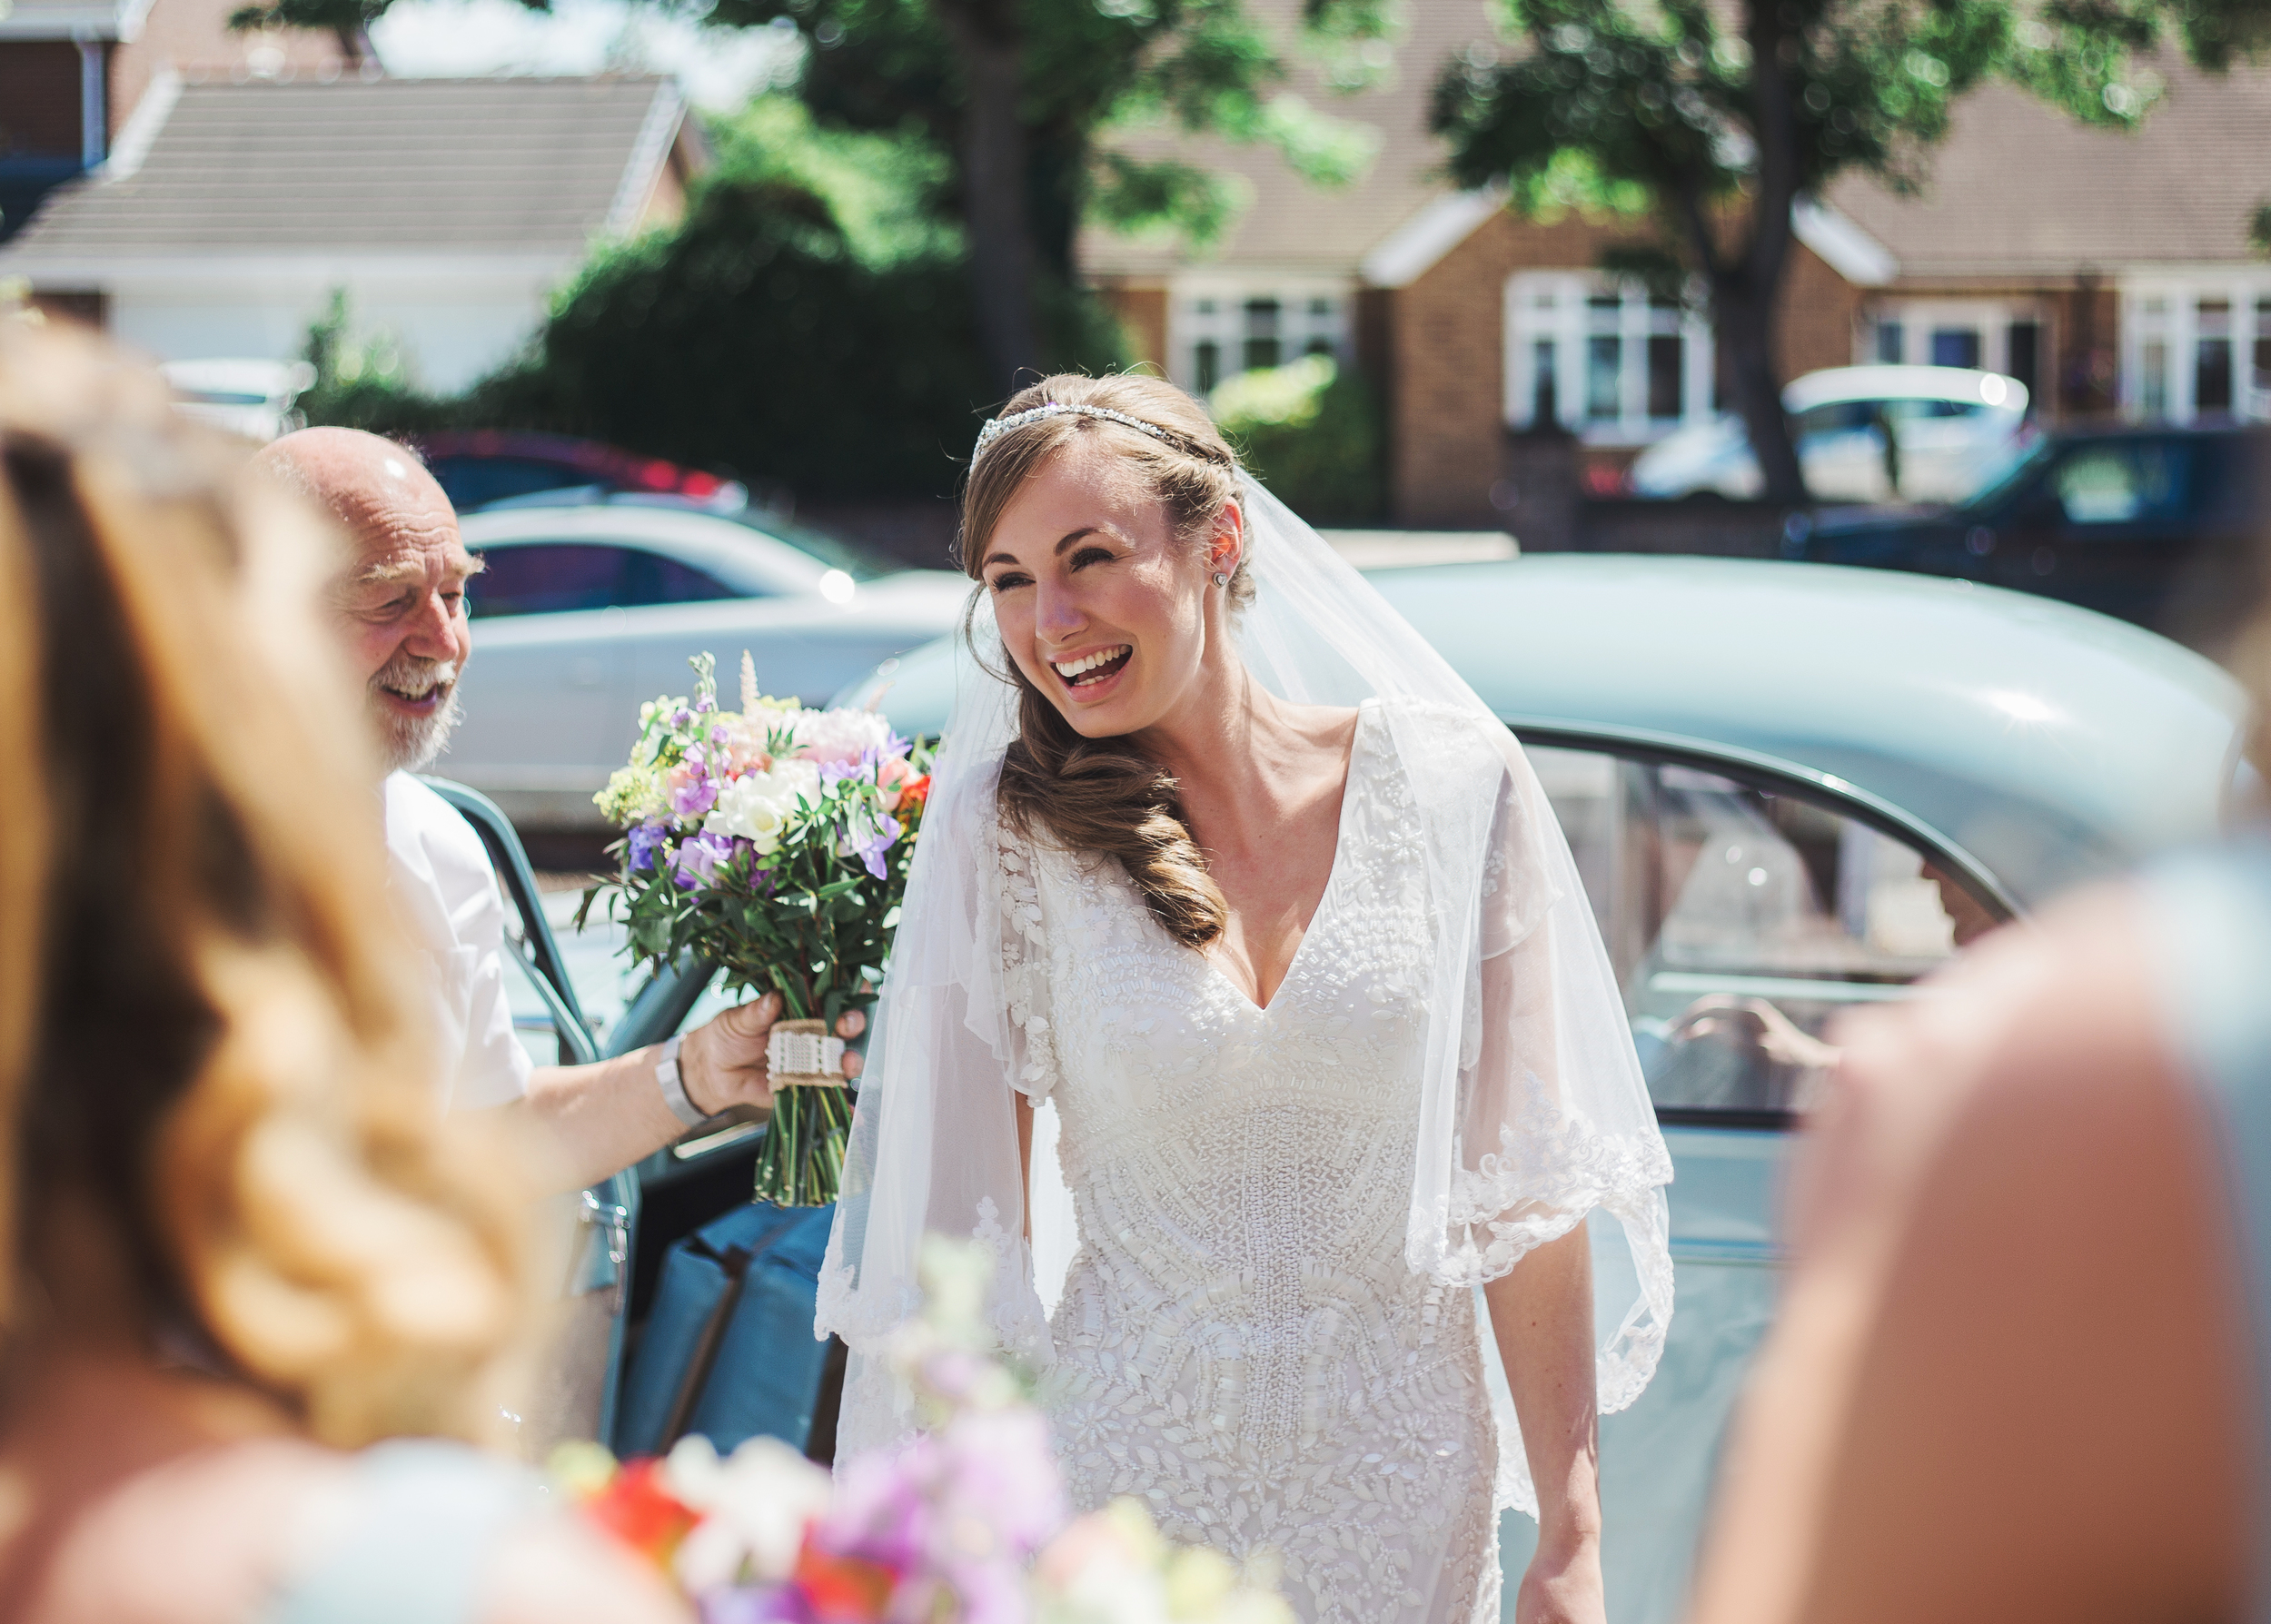 Bride laughs as she arrives at church - Southport Wedding Photography